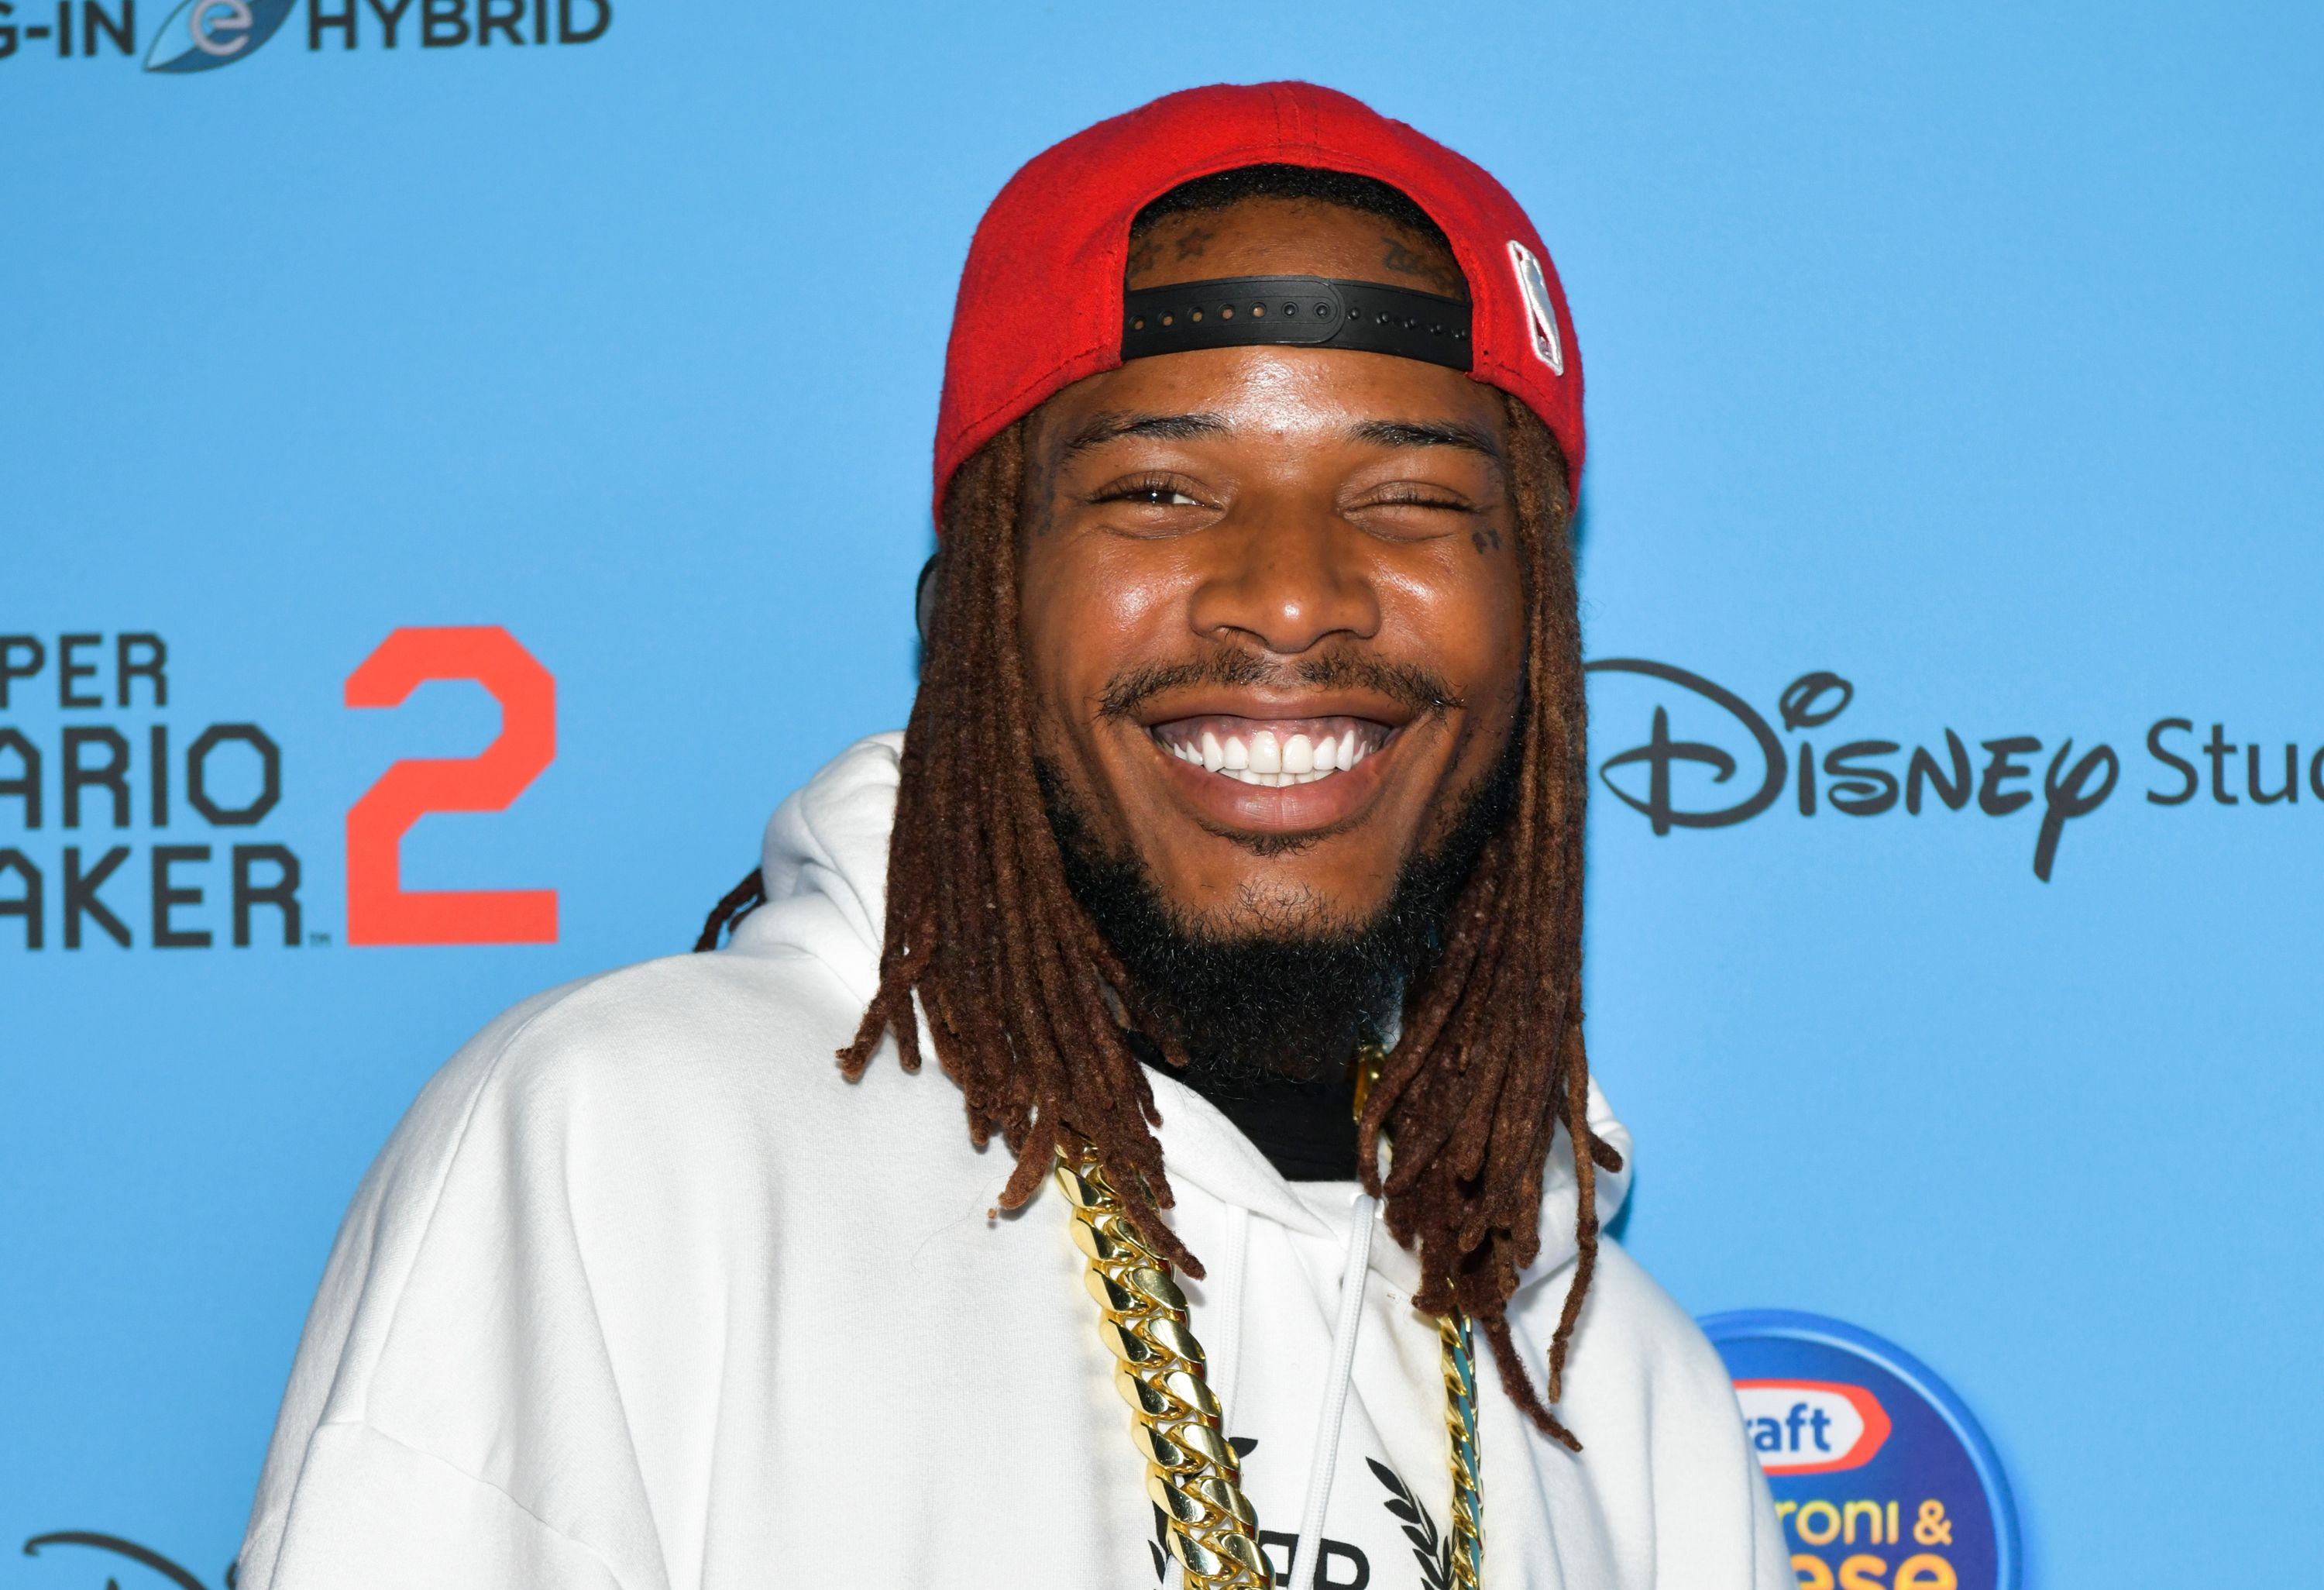 Fetty Wap looks amazing in this photo as he is all smiles at an event.